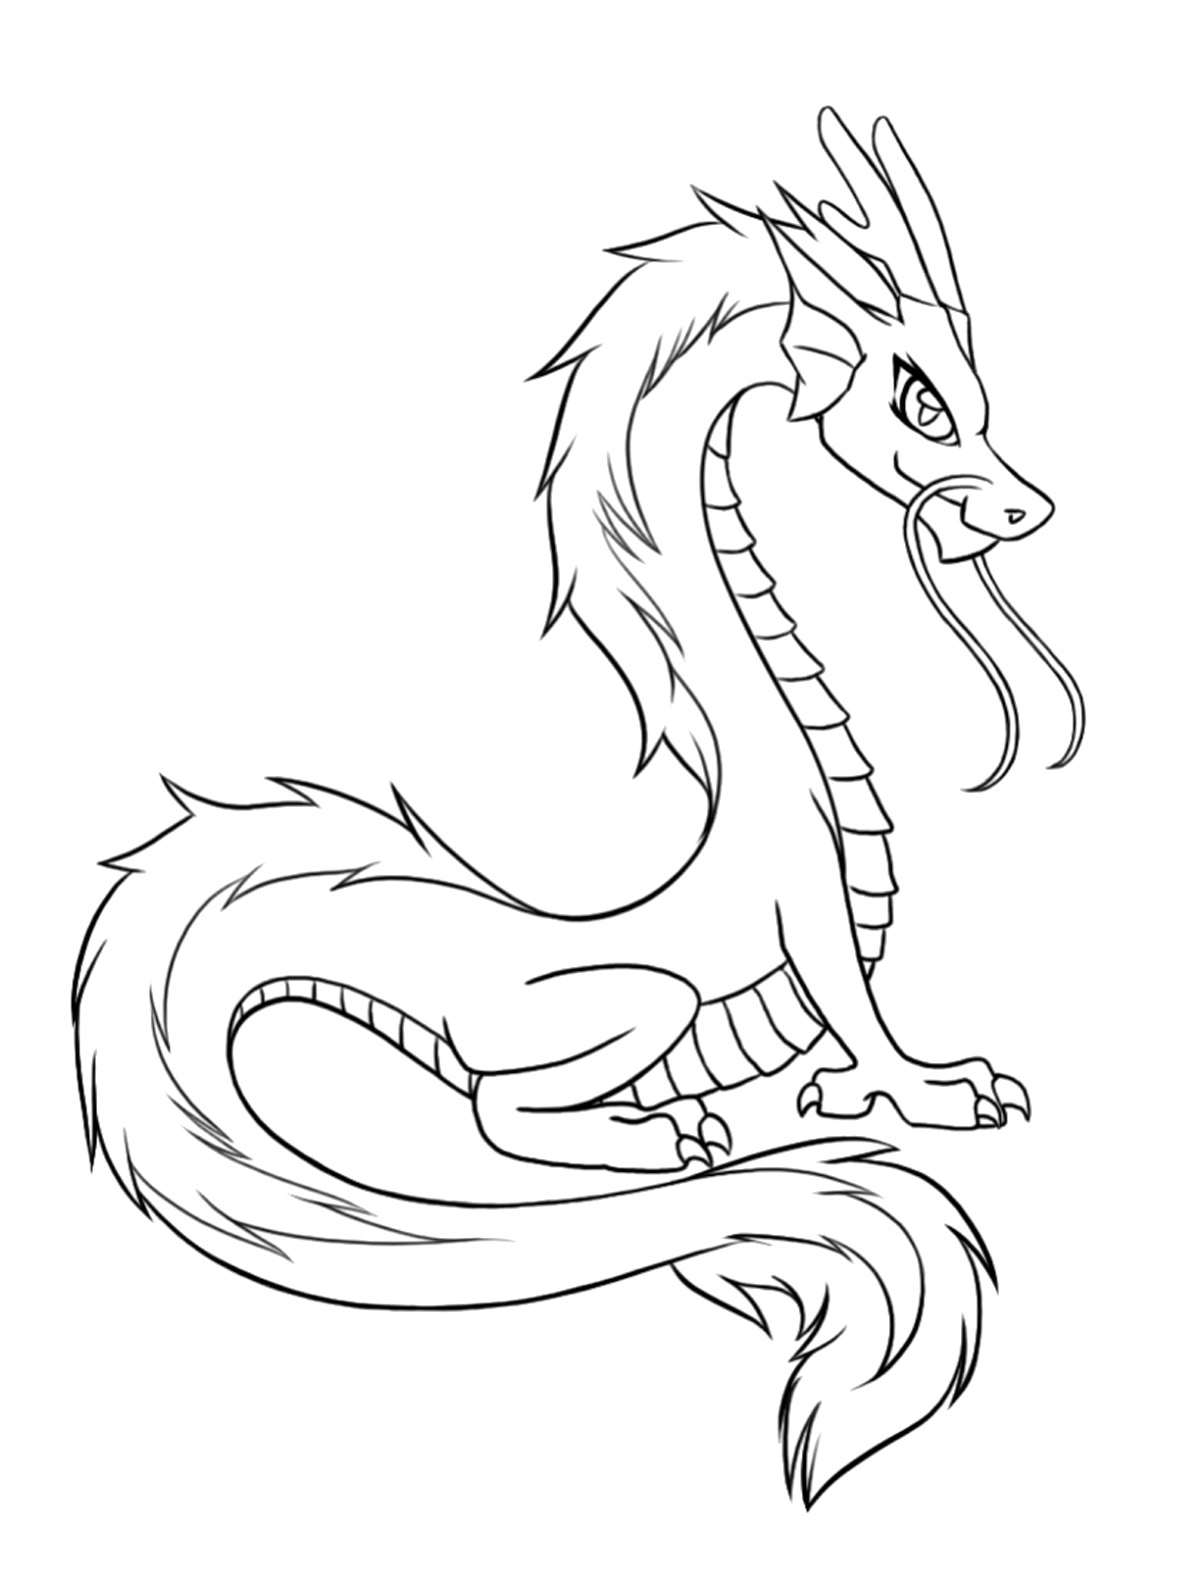 dragon pictures to color and print coloring pages dragon coloring pages free and printable color to and print dragon pictures